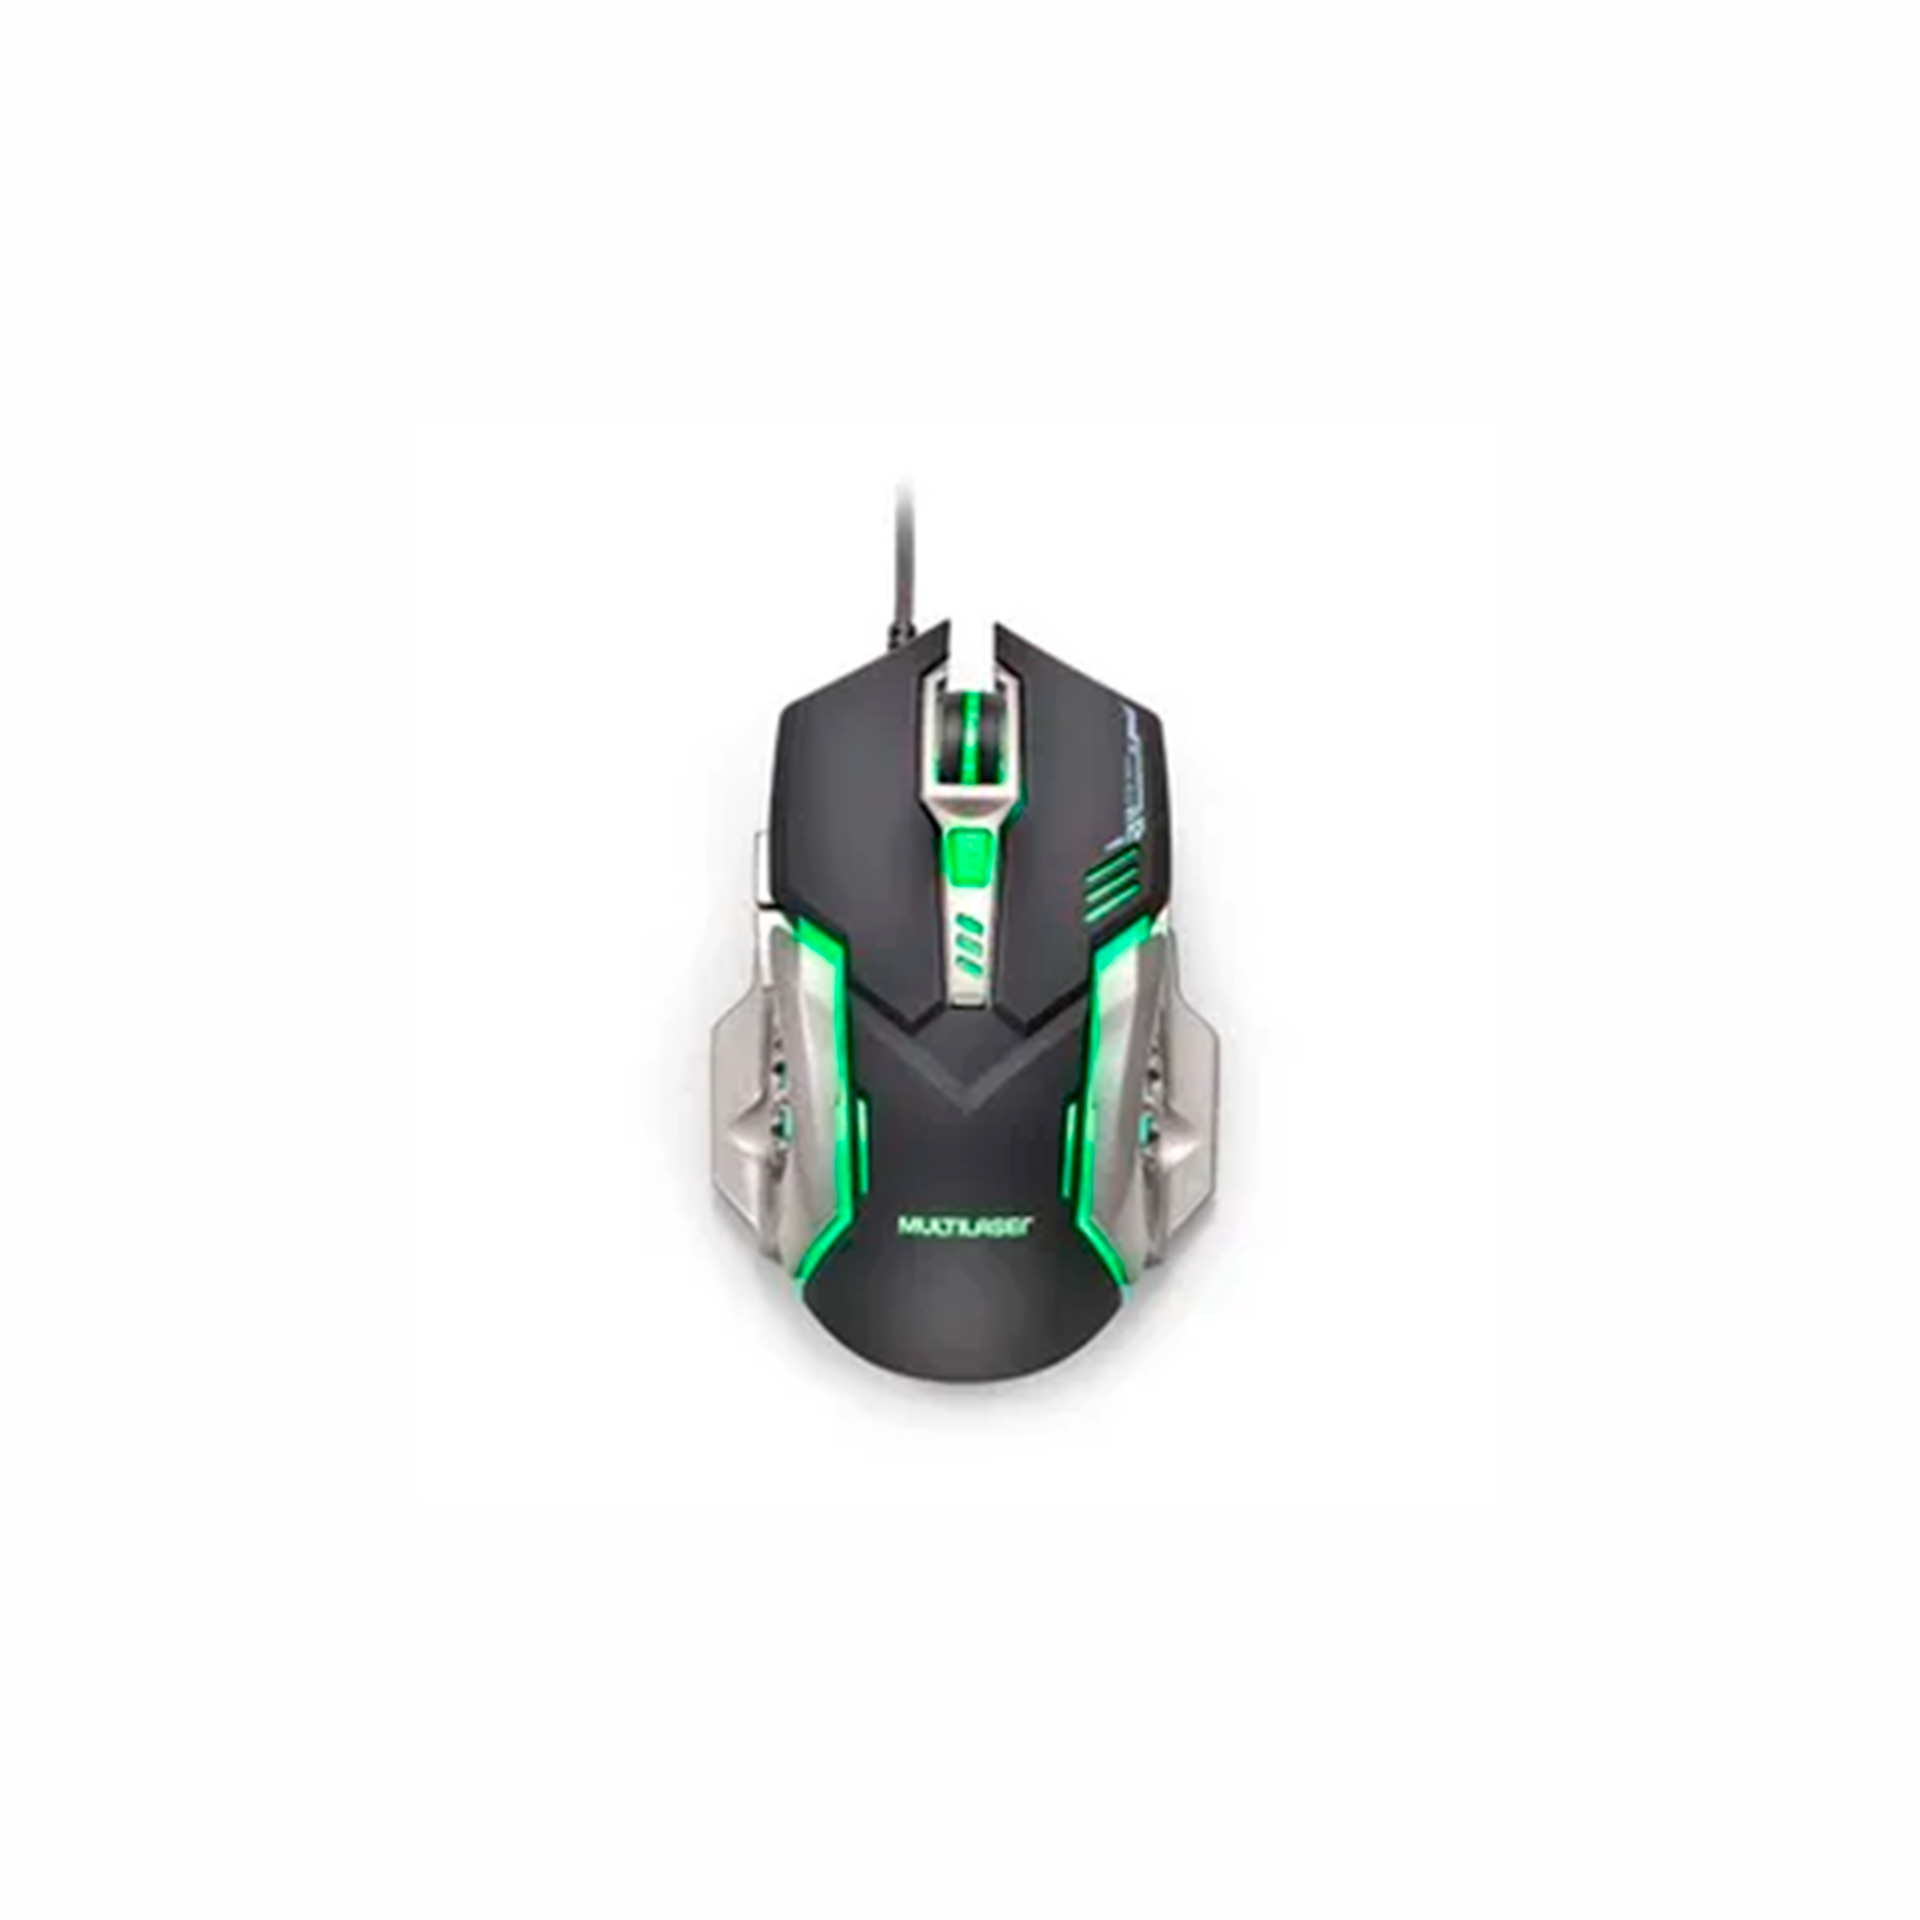 MOUSE GAMER PRT/GRAF MO269 MULTILASER